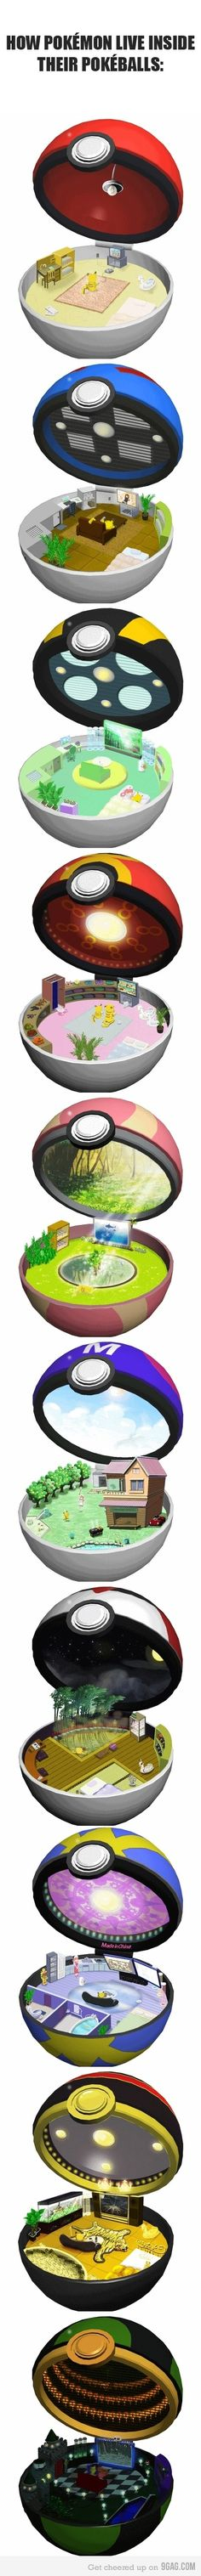 It's bigger on the inside than on the outside! Timelord Technology. Hmm... Timelords made Pokemon?